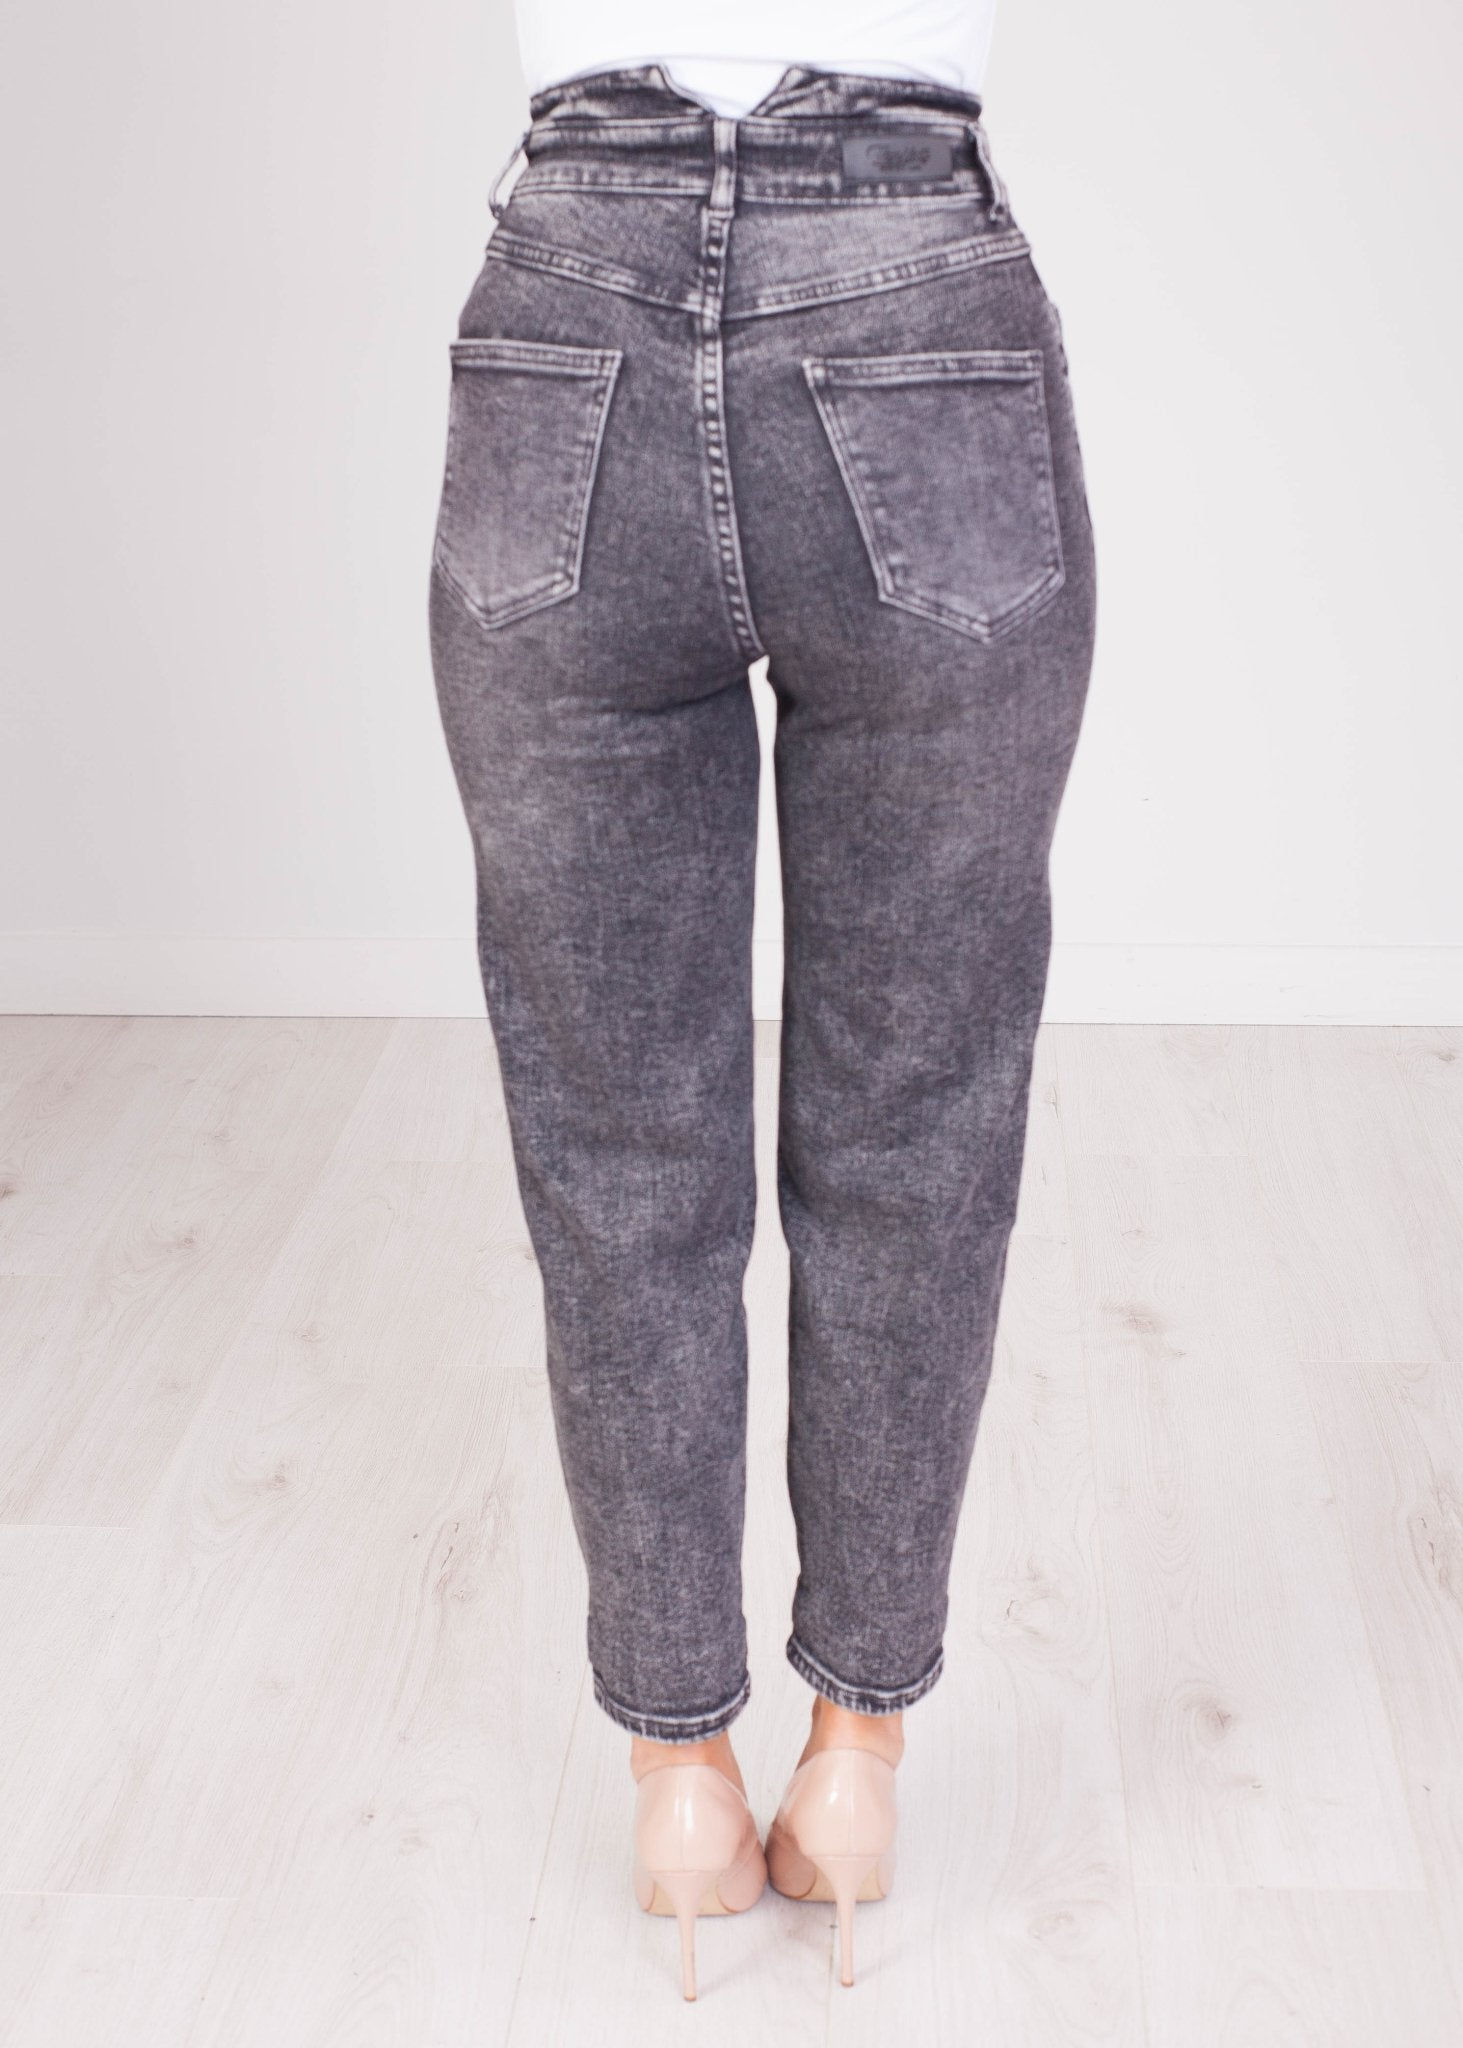 Lana Charcoal Super High Waisted Jean - The Walk in Wardrobe